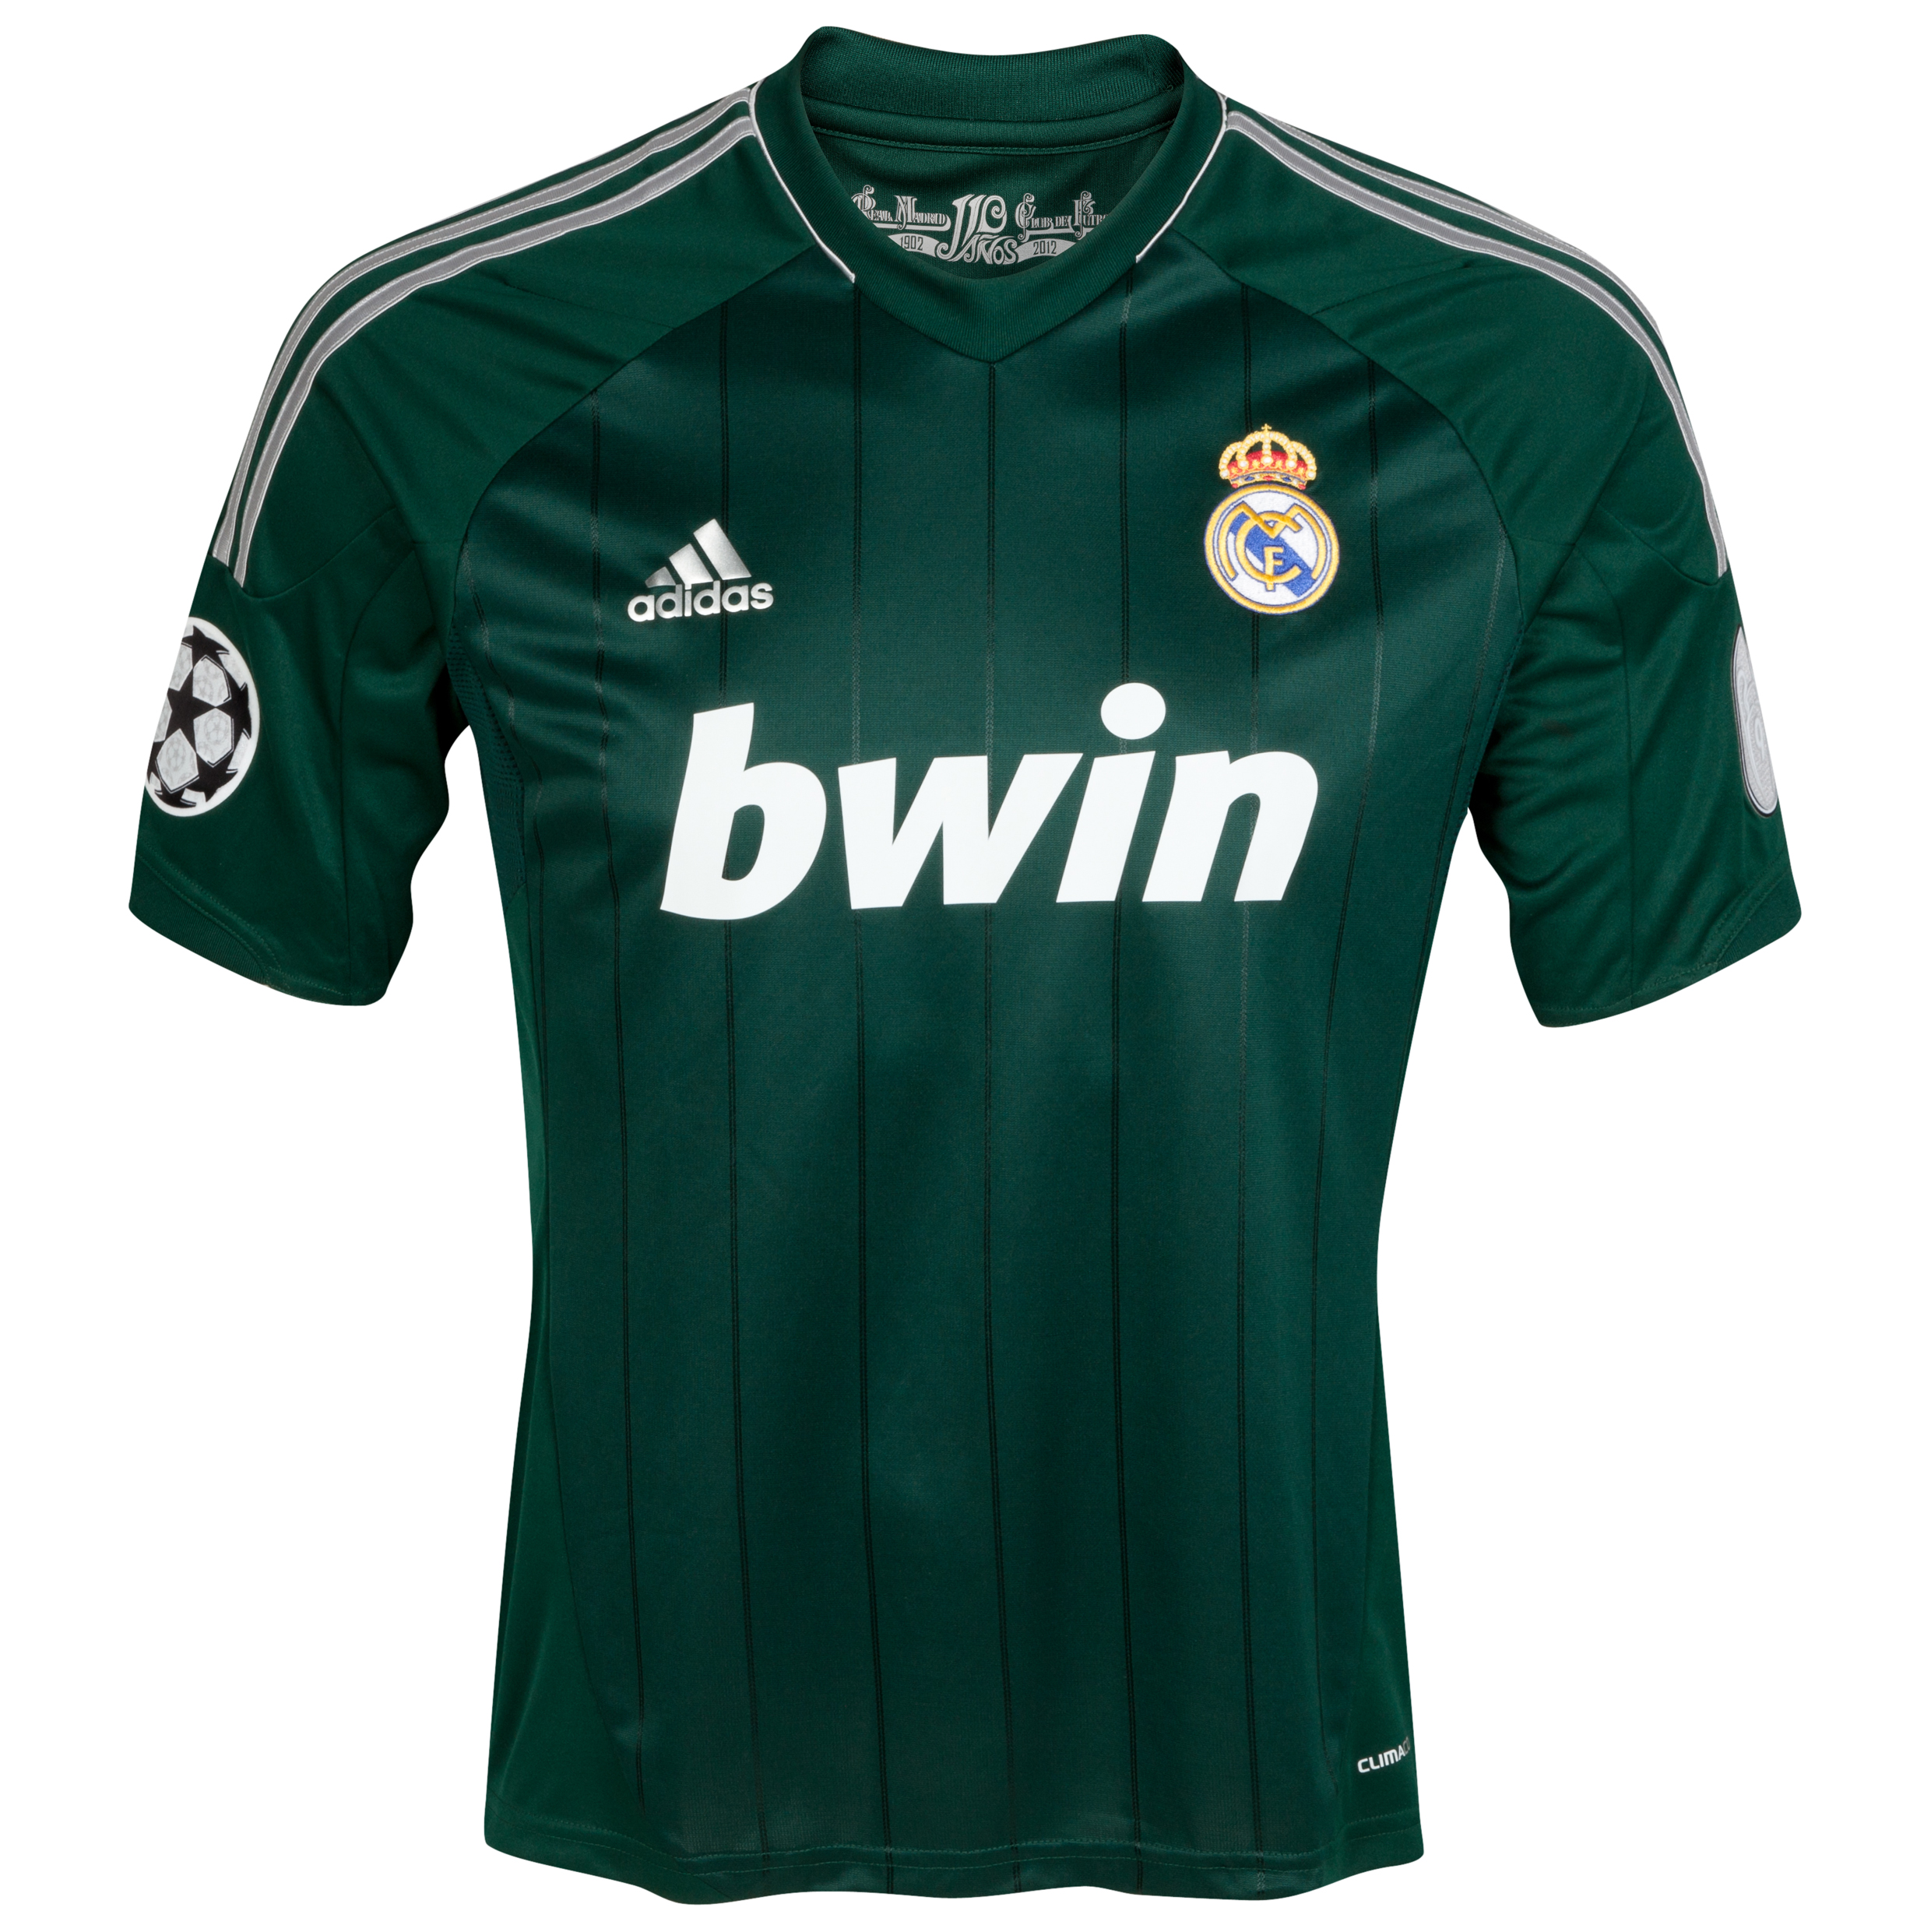 Buy Real Madrid UEFA Champions League Third Kit 2012/13 -